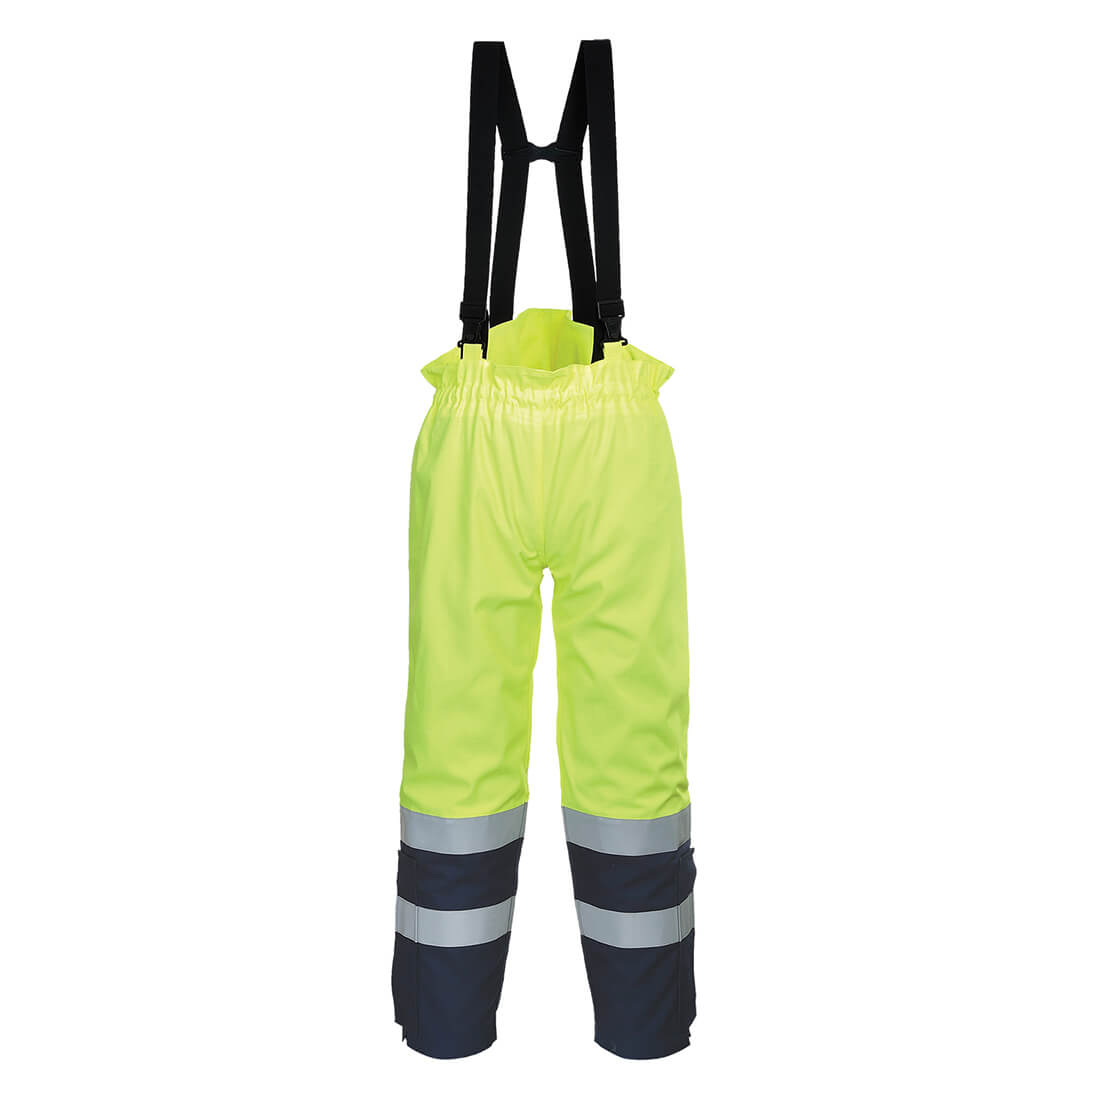 Image of Biz Flame Hi-Vis Flame Resistant Multi Arc Trousers Yellow / Navy L